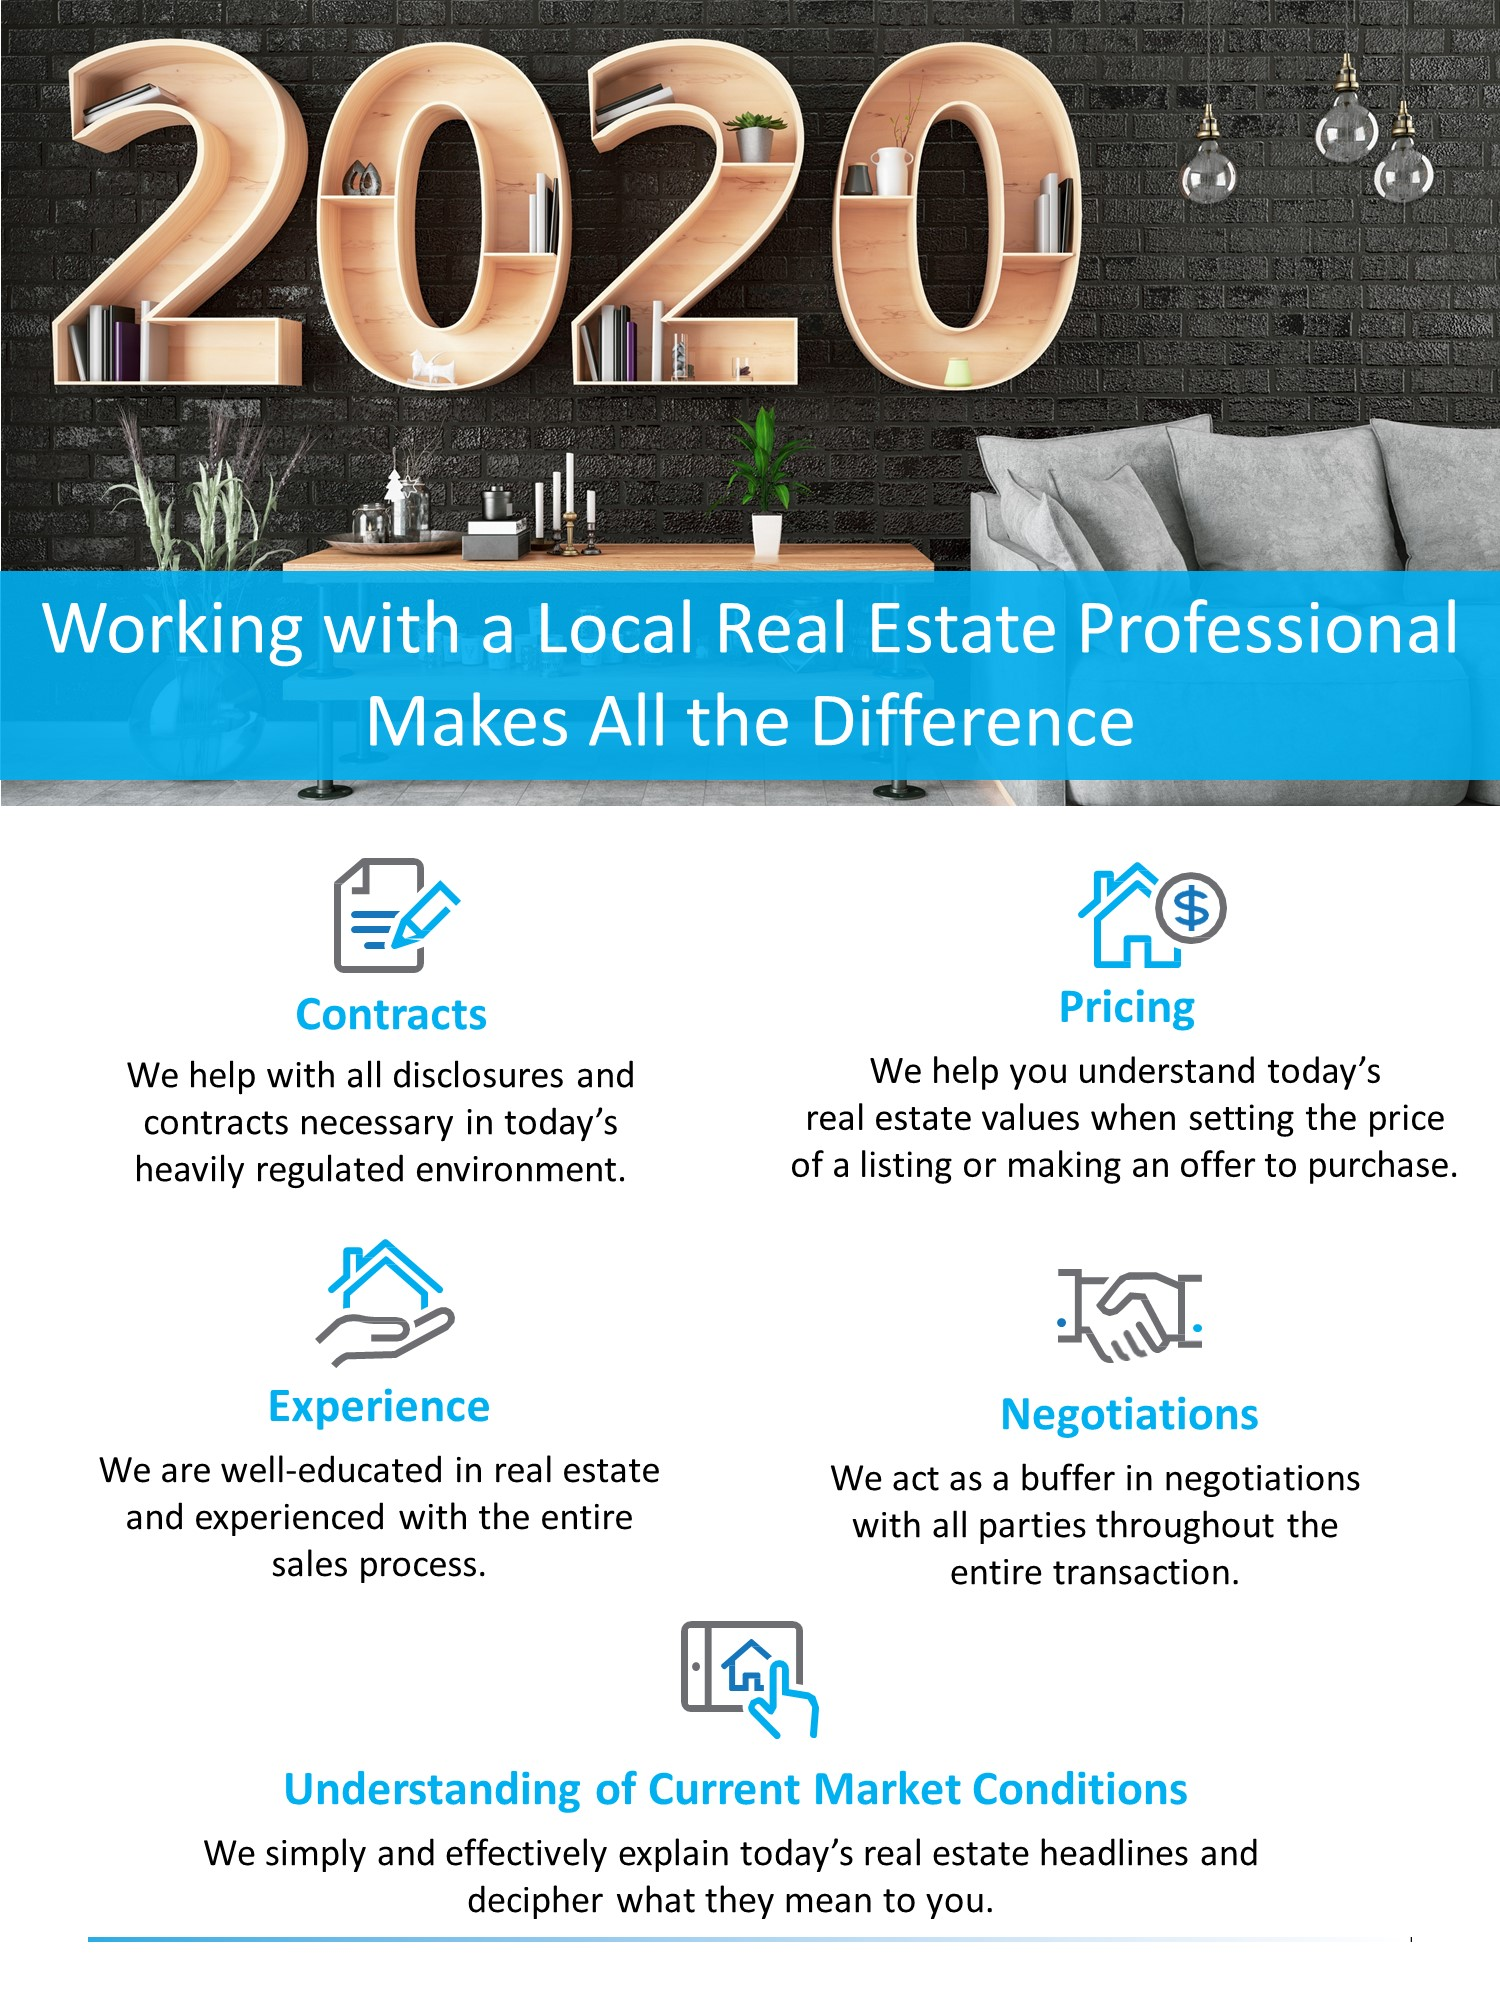 Working with a Local Real Estate Professional Makes All the Difference [INFOGRAPHIC]   Simplifying The Market